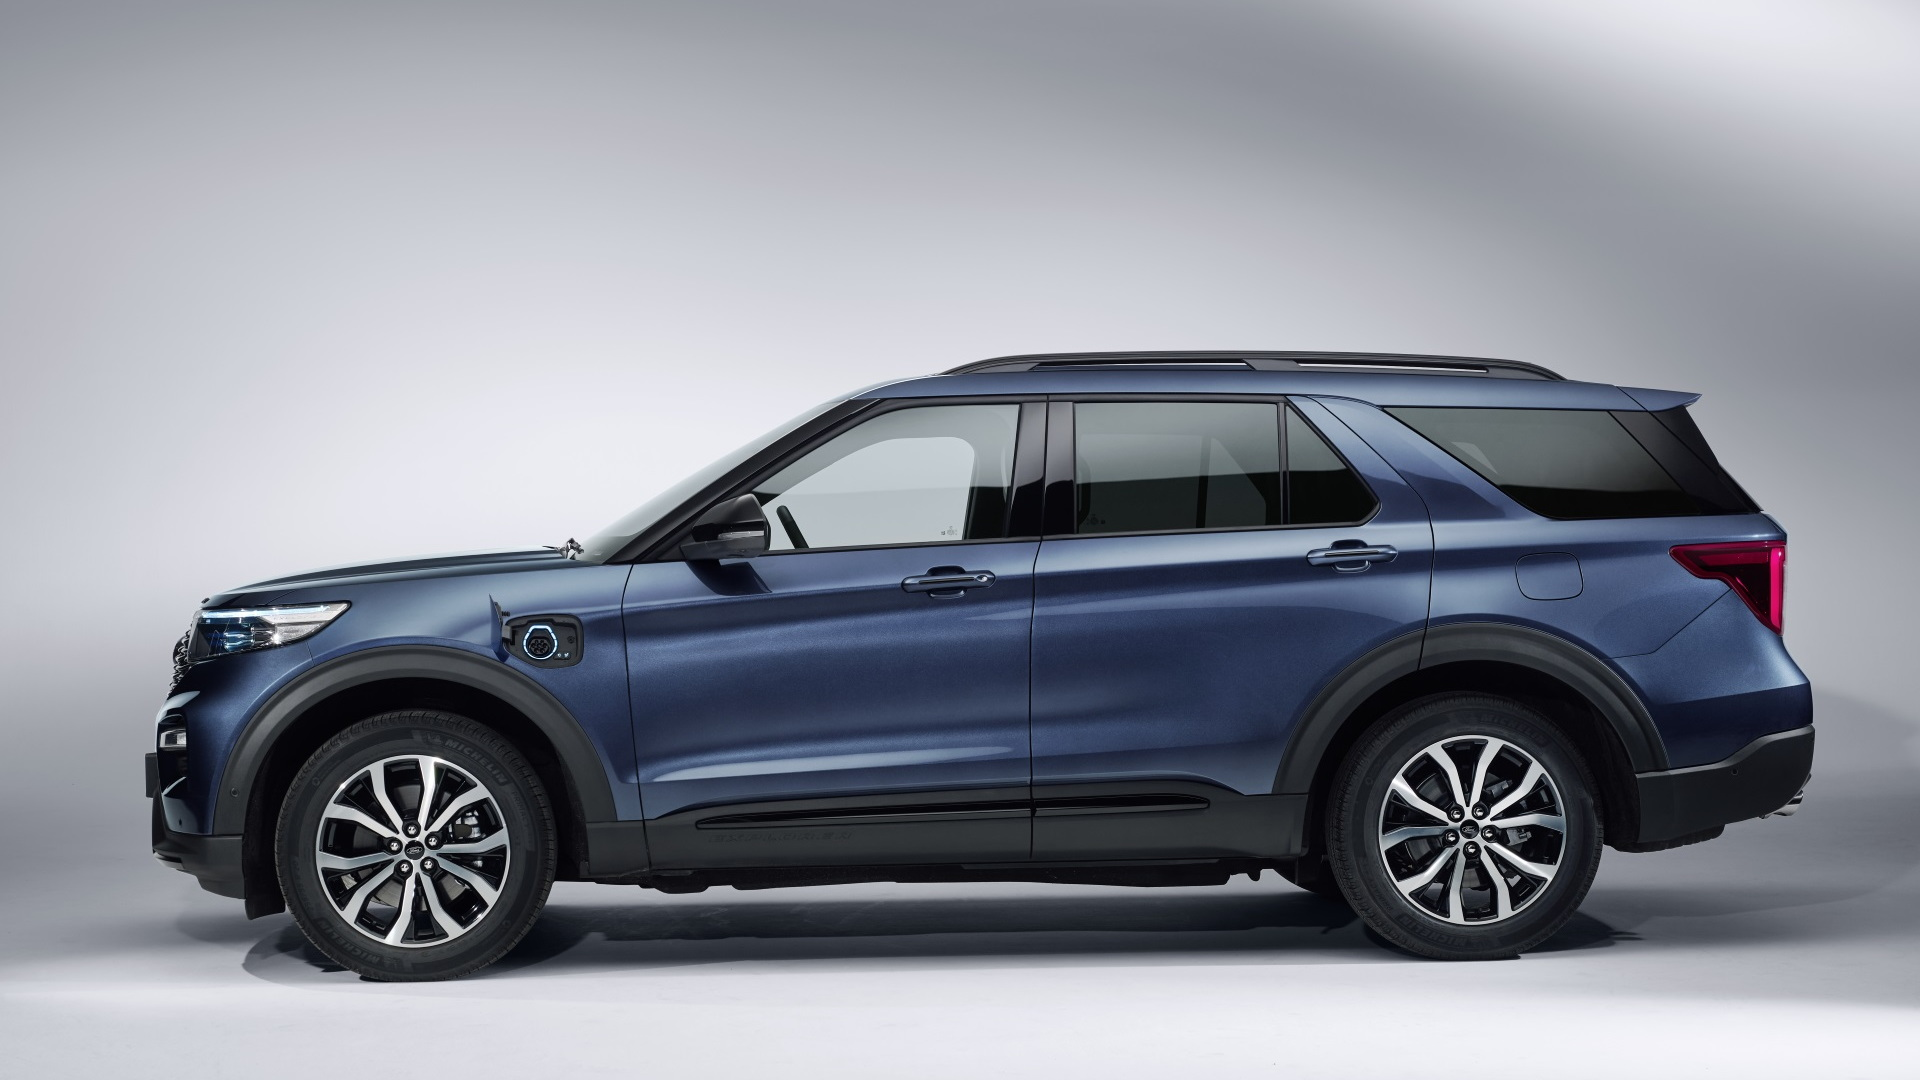 2019 Ford Explorer Plug-In Hybrid